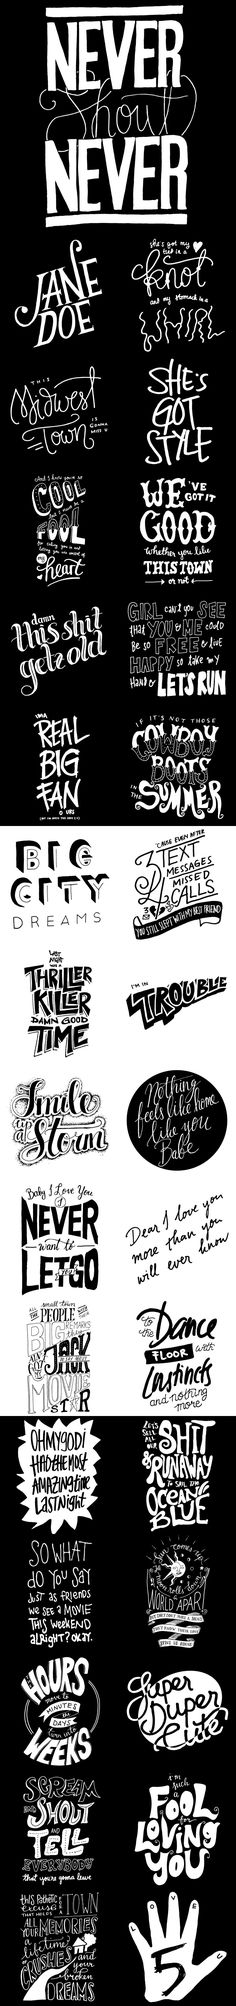 Our #nevershoutnever inspired #lettering  pieces! Available as t-shirt and other stuff on Society6.